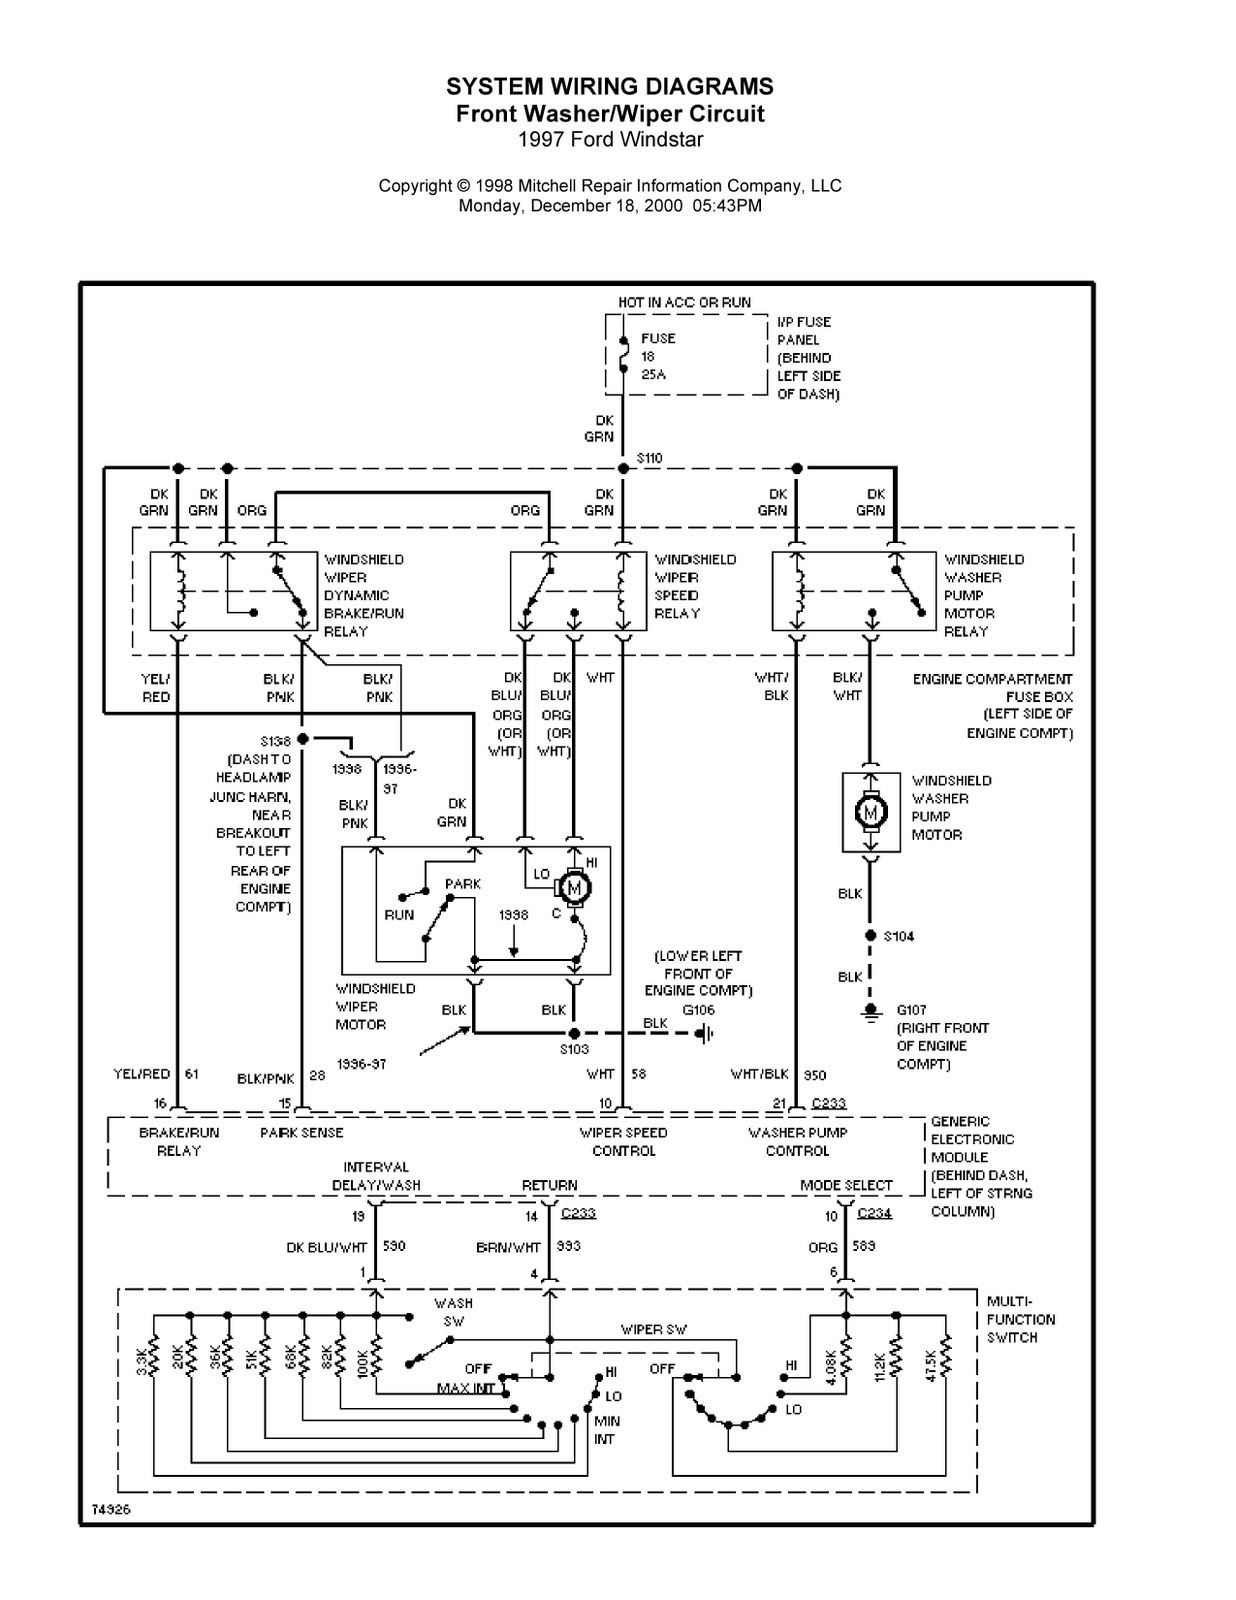 0051 1997 ford windstar complete system wiring diagrams wiring GM Wiper Motor Wiring Diagram at gsmx.co